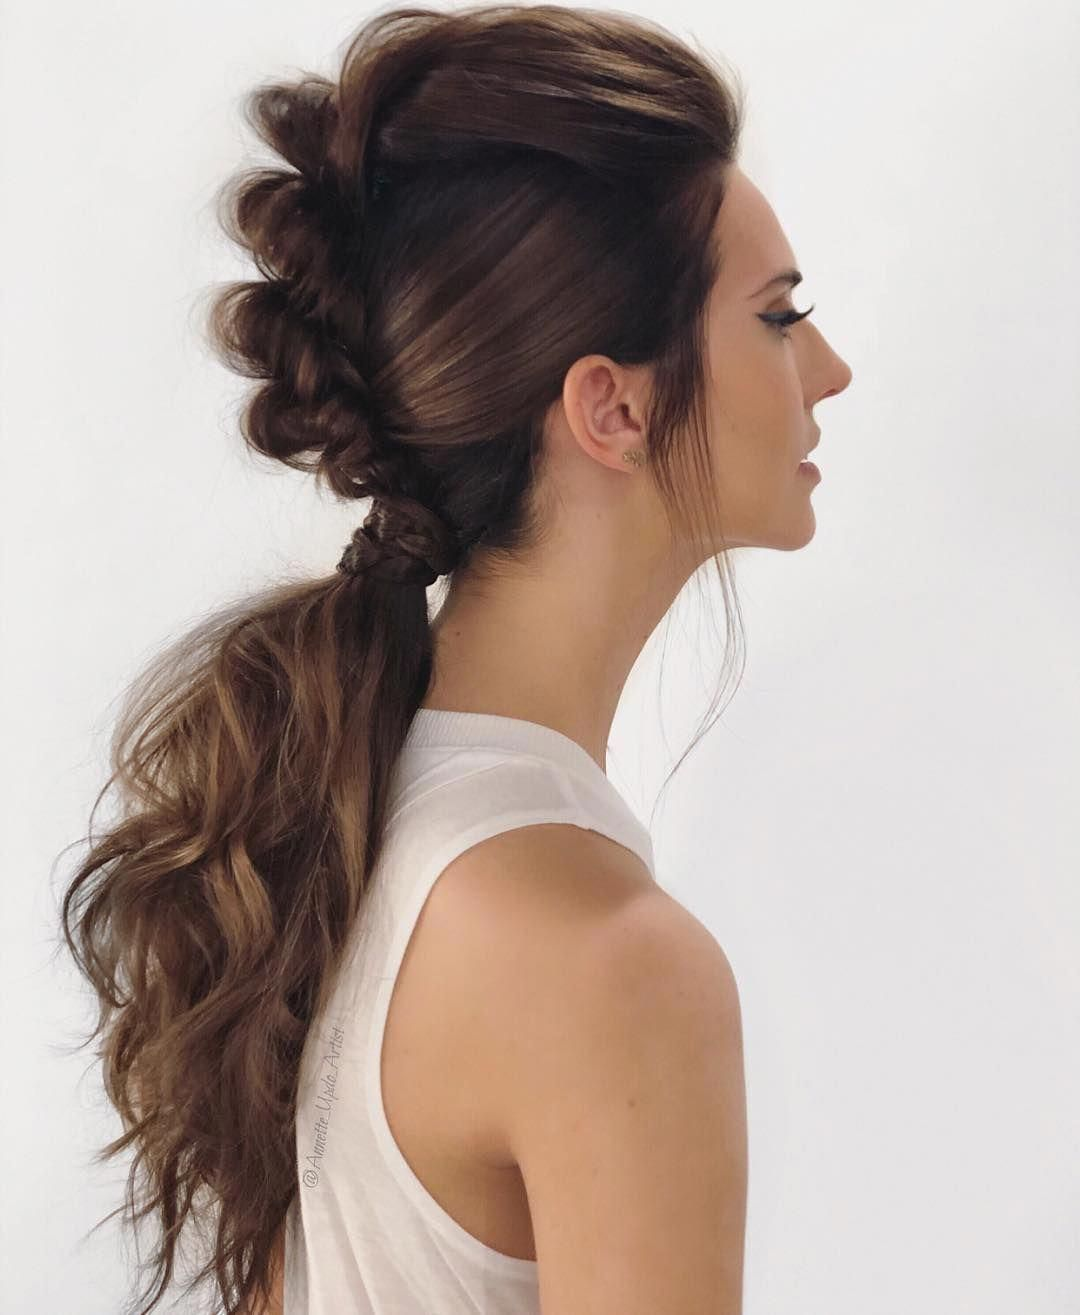 "55 – wedding hairstyles for long hair in 2018 – Super Best Hair Styles <a class=""pintag"" href=""/explore/Weddinghairstyles/"" title=""#Weddinghairstyles explore Pinterest"">#Weddinghairstyles</a><p><a href=""http://www.homeinteriordesign.org/2018/02/short-guide-to-interior-decoration.html"">Short guide to interior decoration</a></p>"